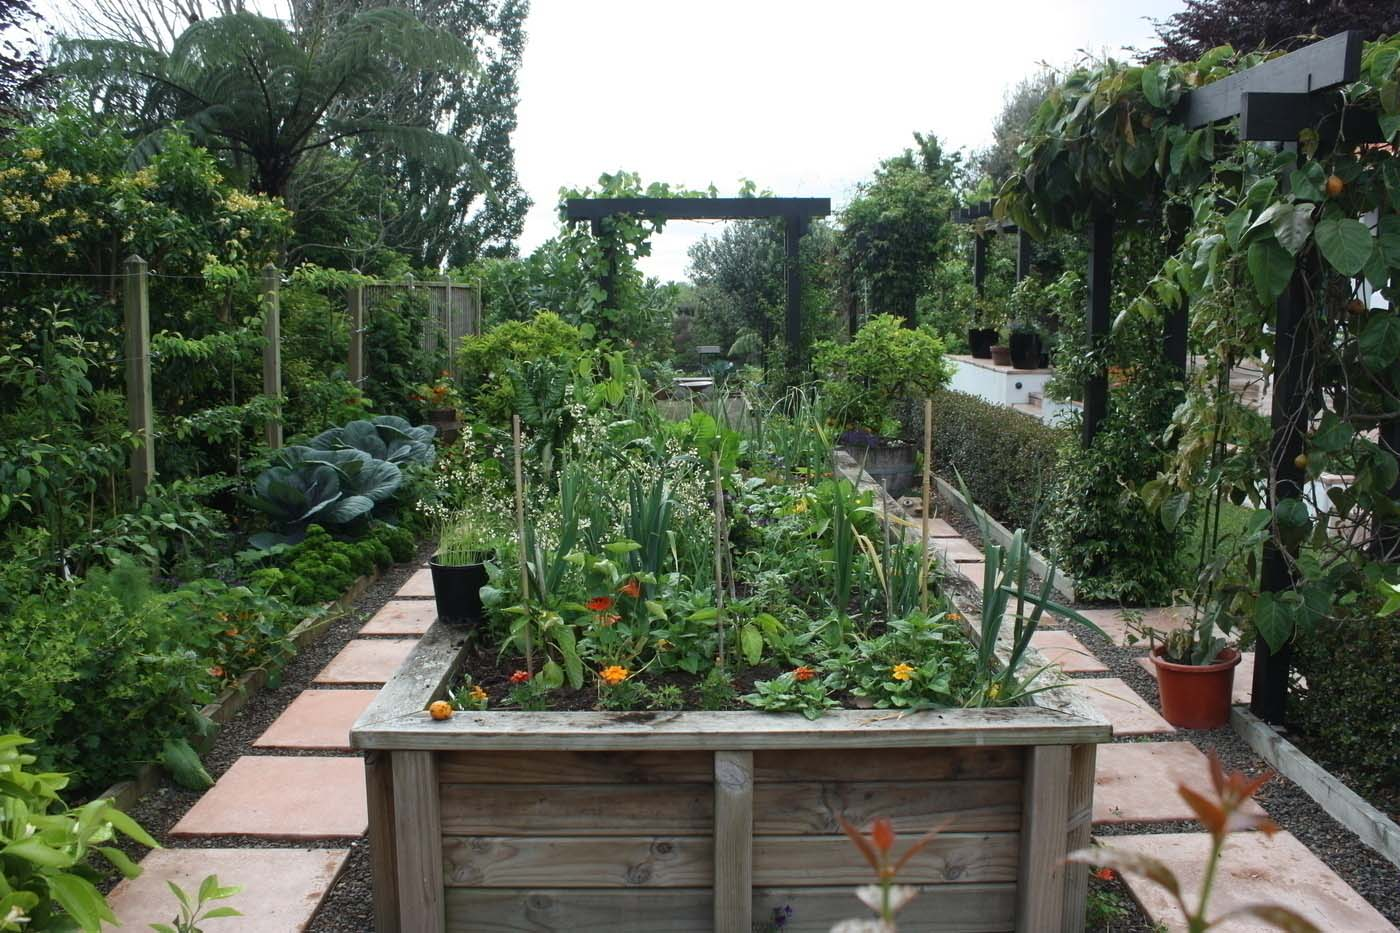 More raised vegetable gardens and espeliered fruit